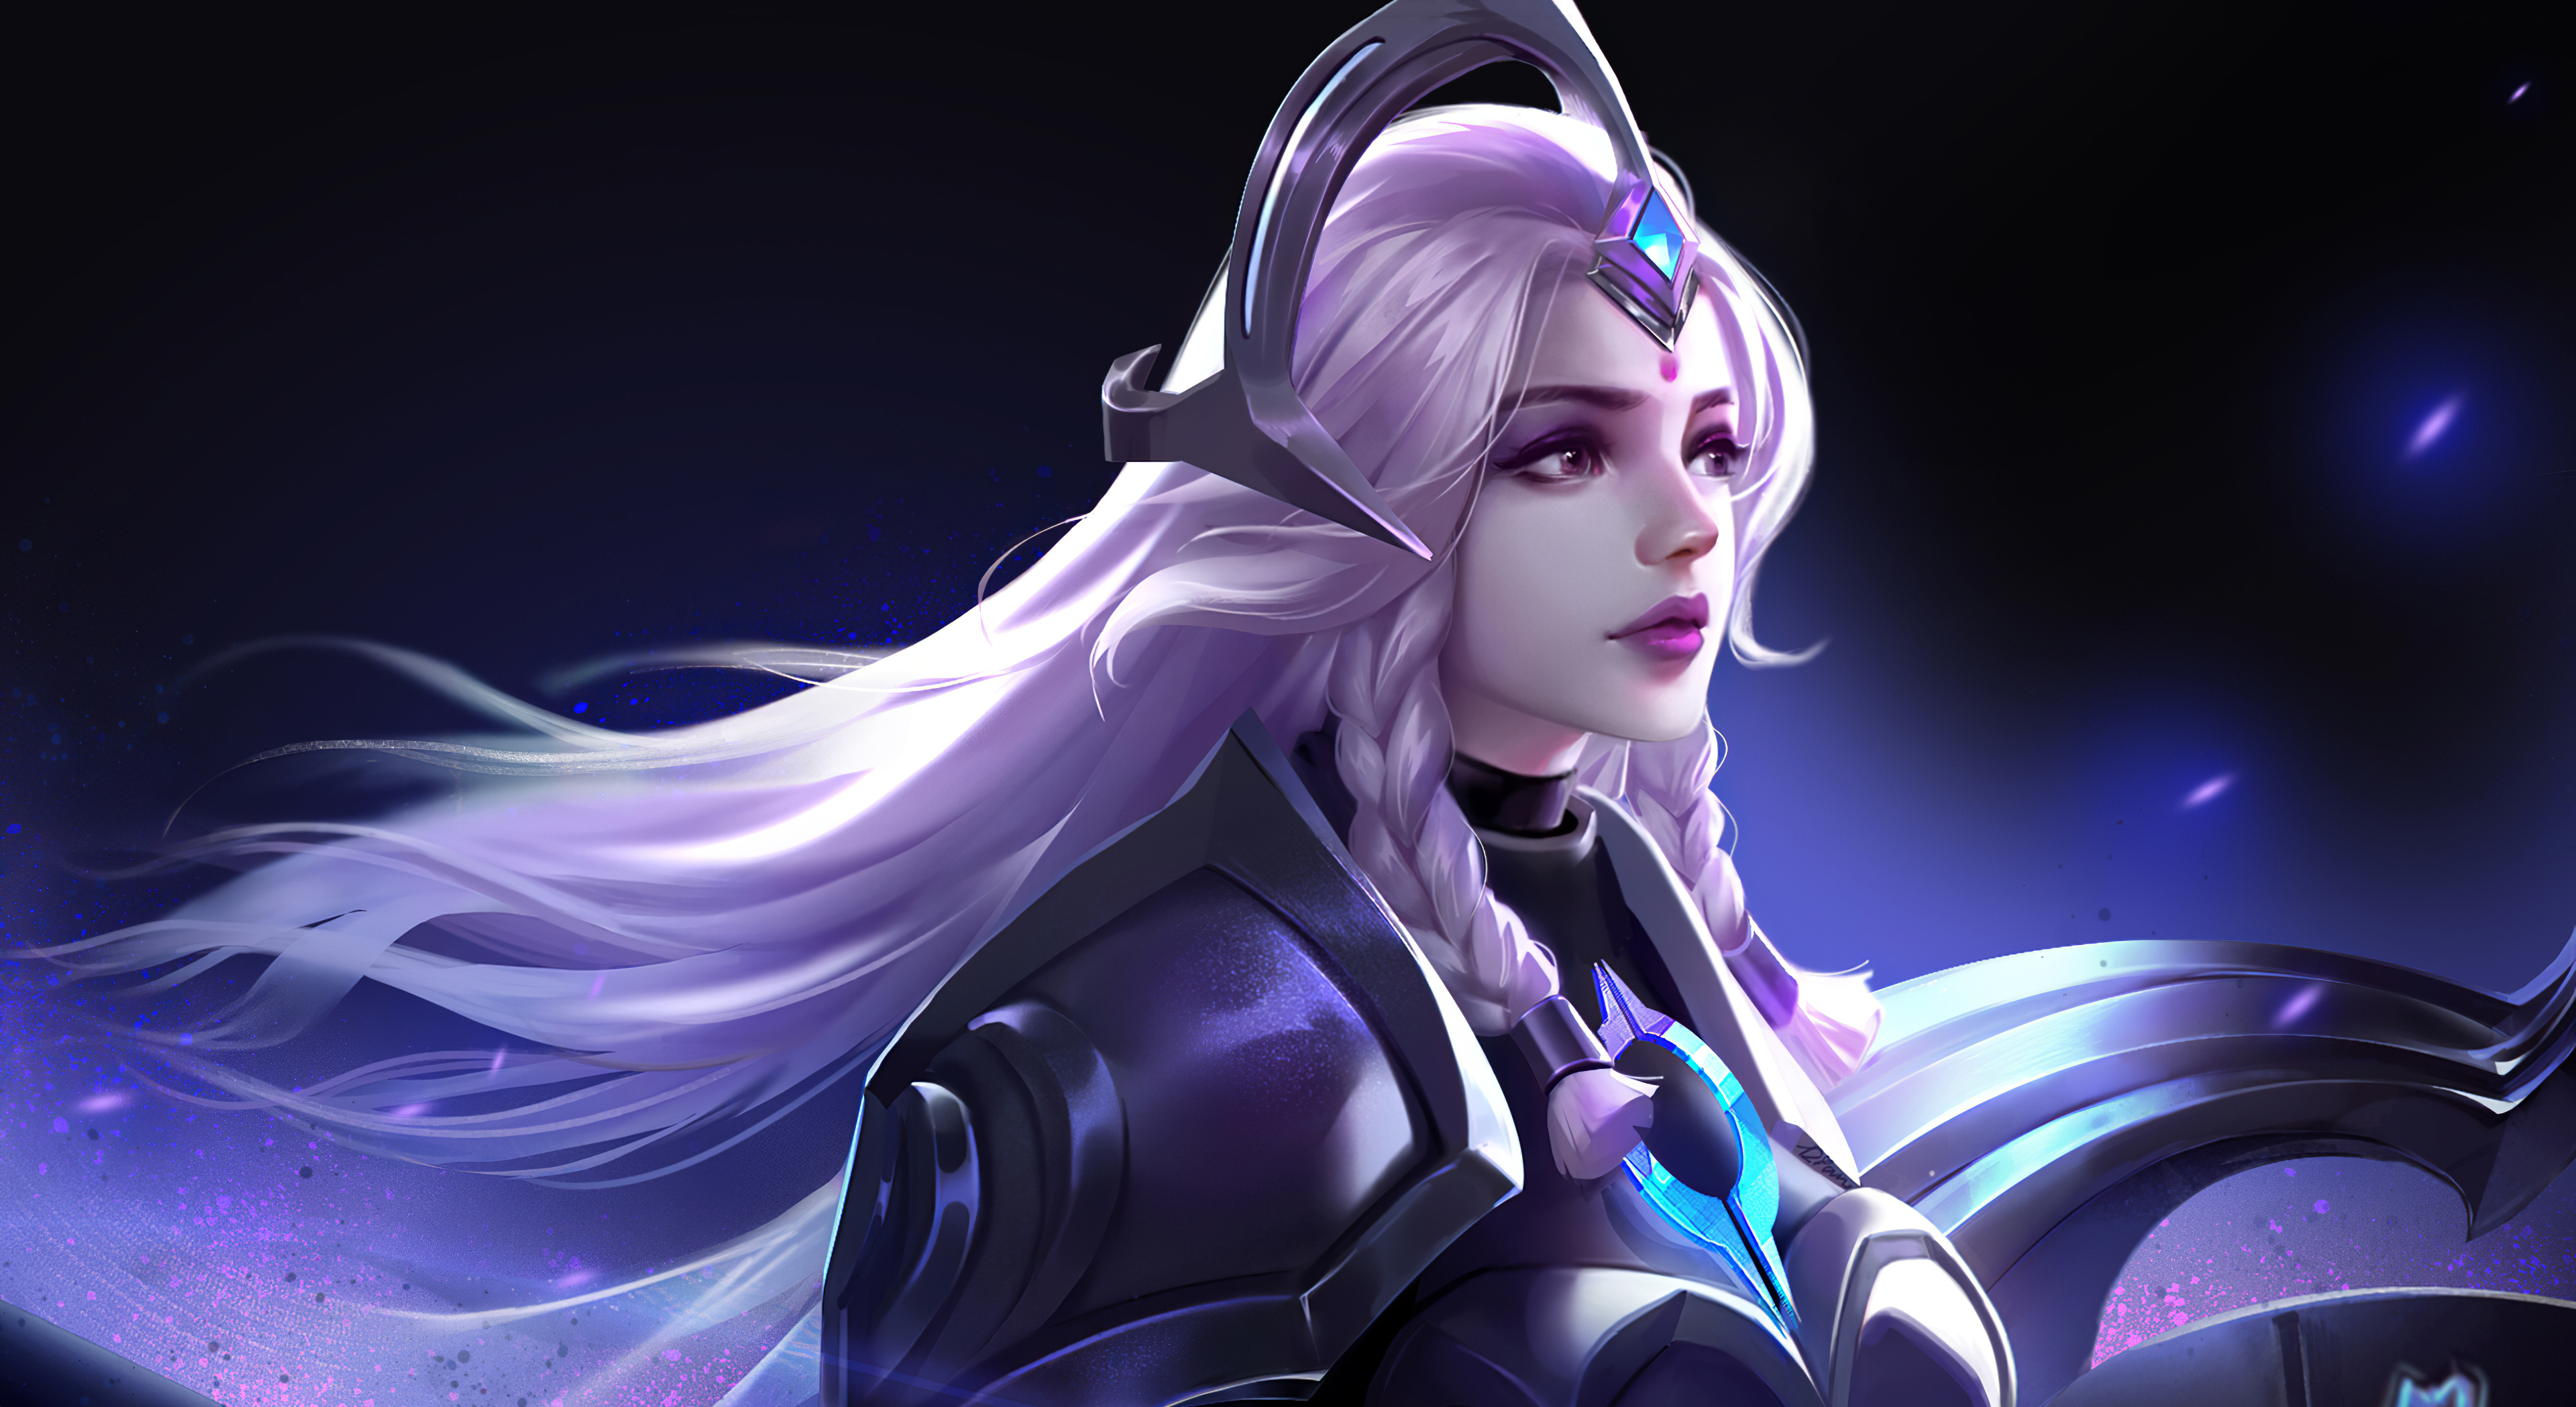 Lol Leona 4k Hd Games 4k Wallpapers Images Backgrounds Photos